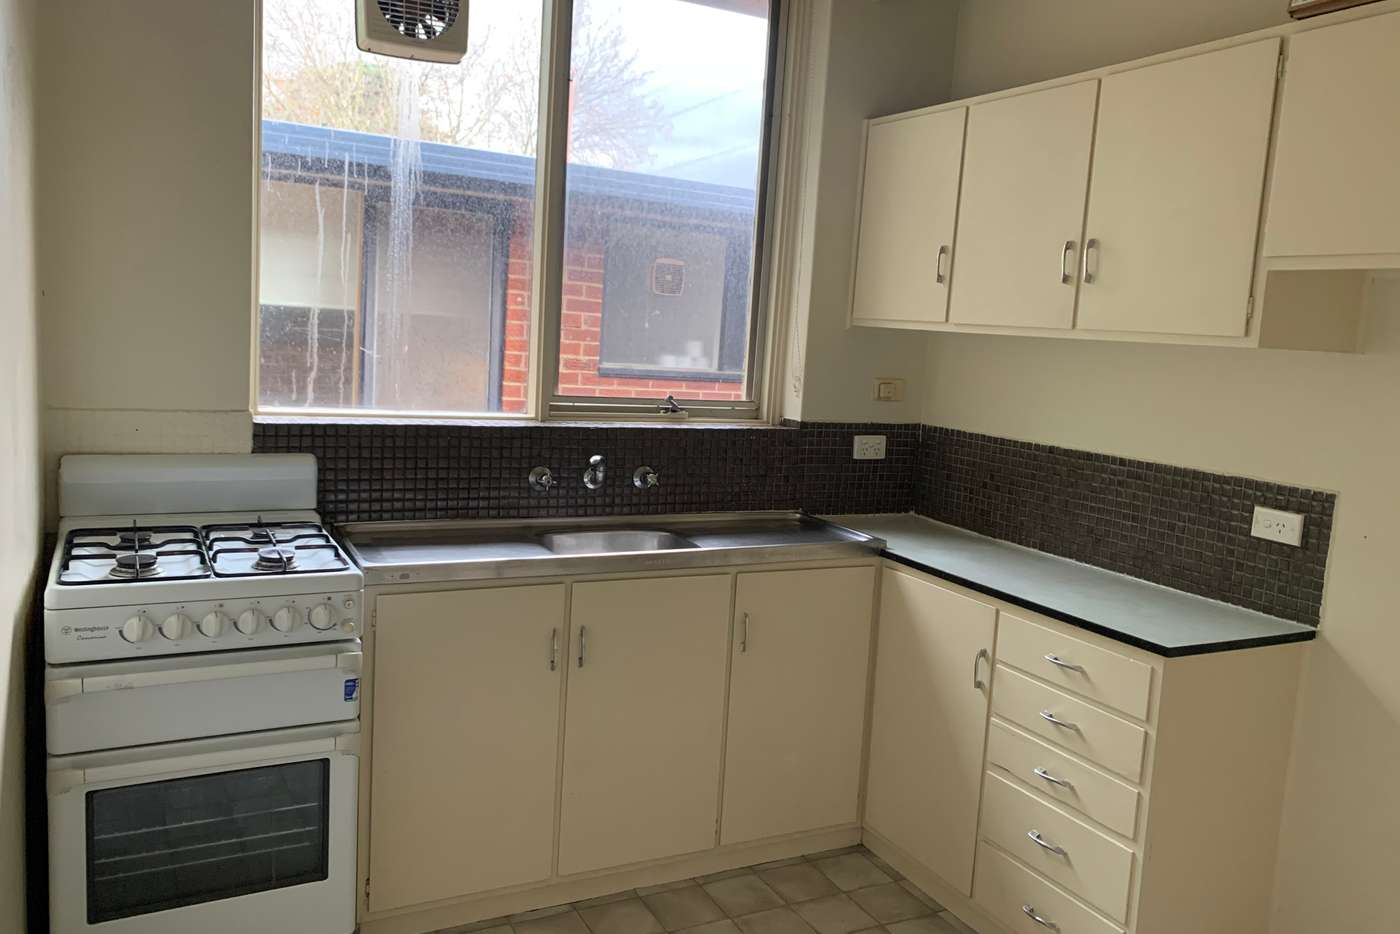 Main view of Homely apartment listing, 16/22 Brixton Rise, Glen Iris VIC 3146